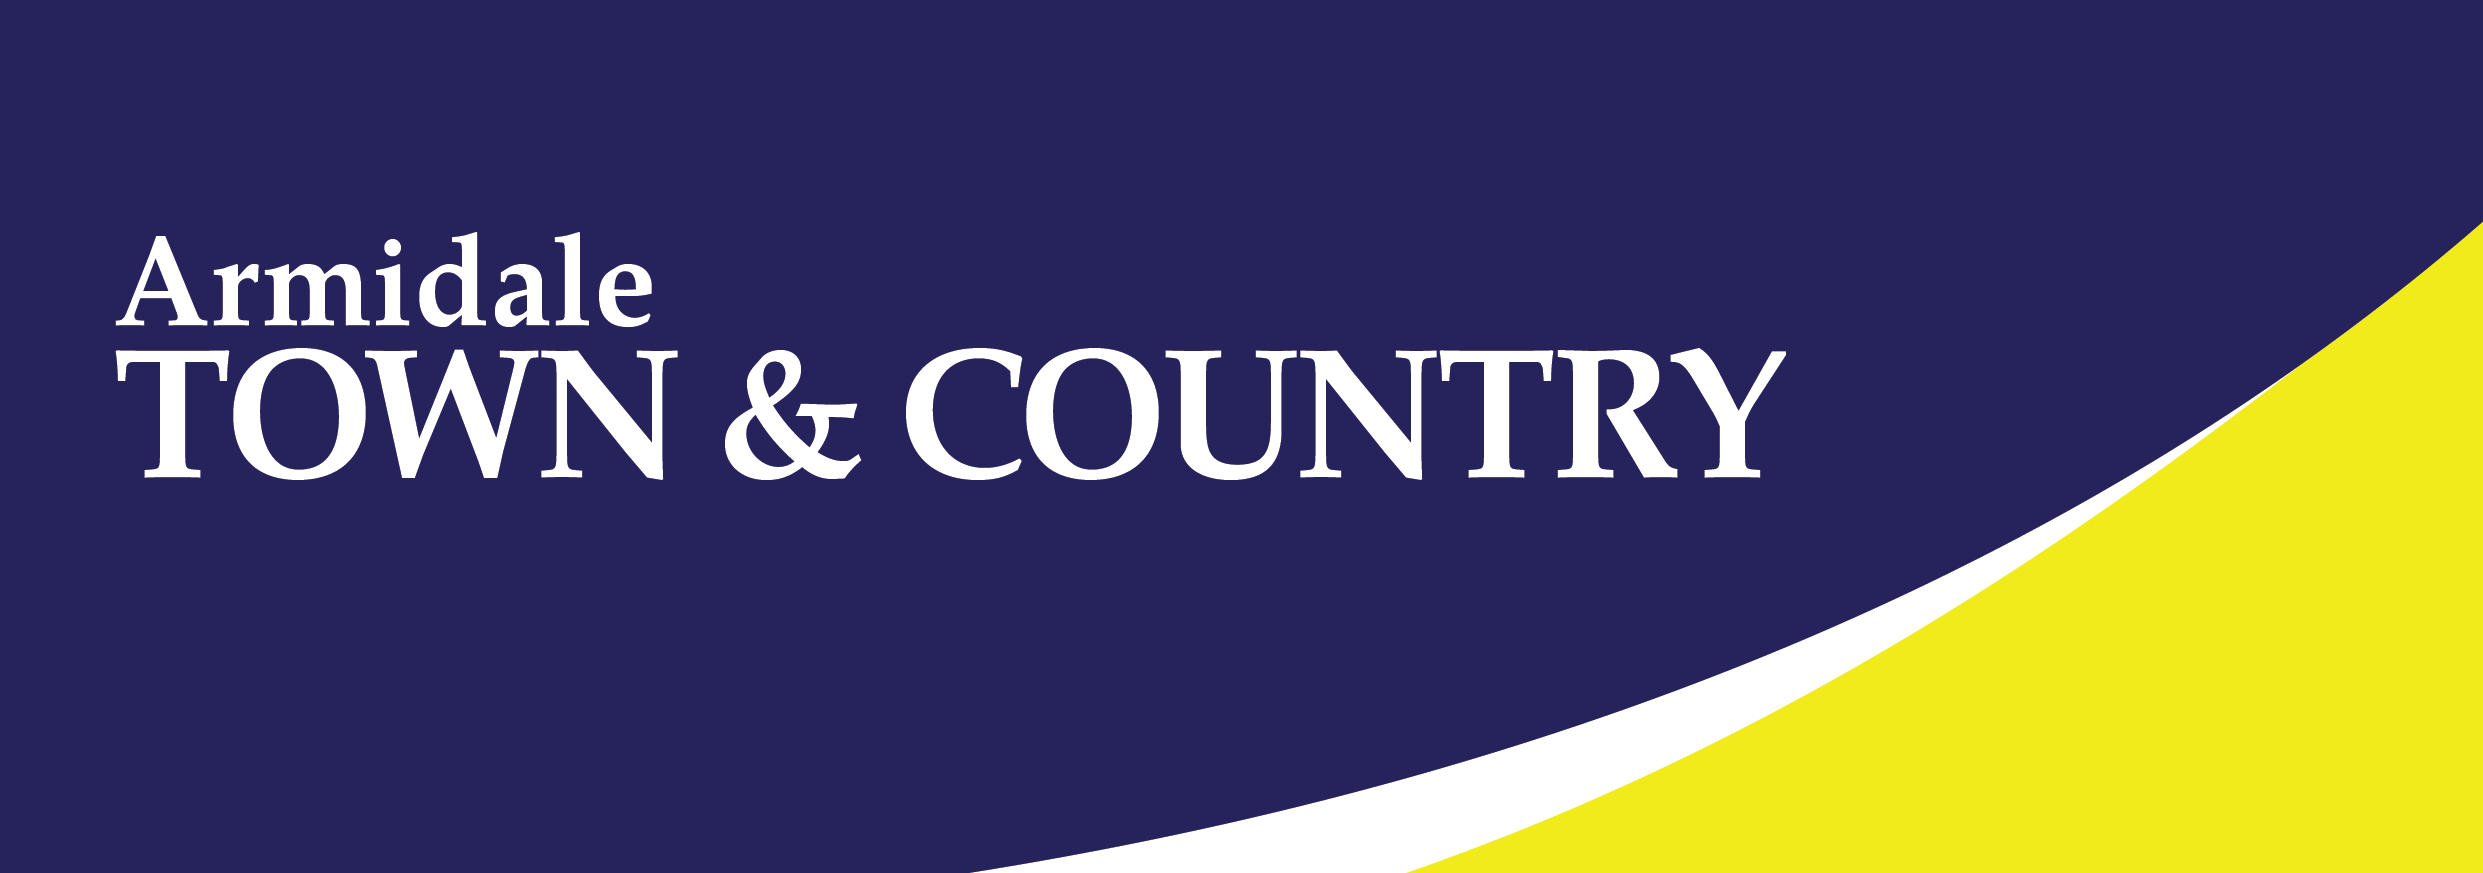 Town & Country Main Logo - High Resolution-01.png